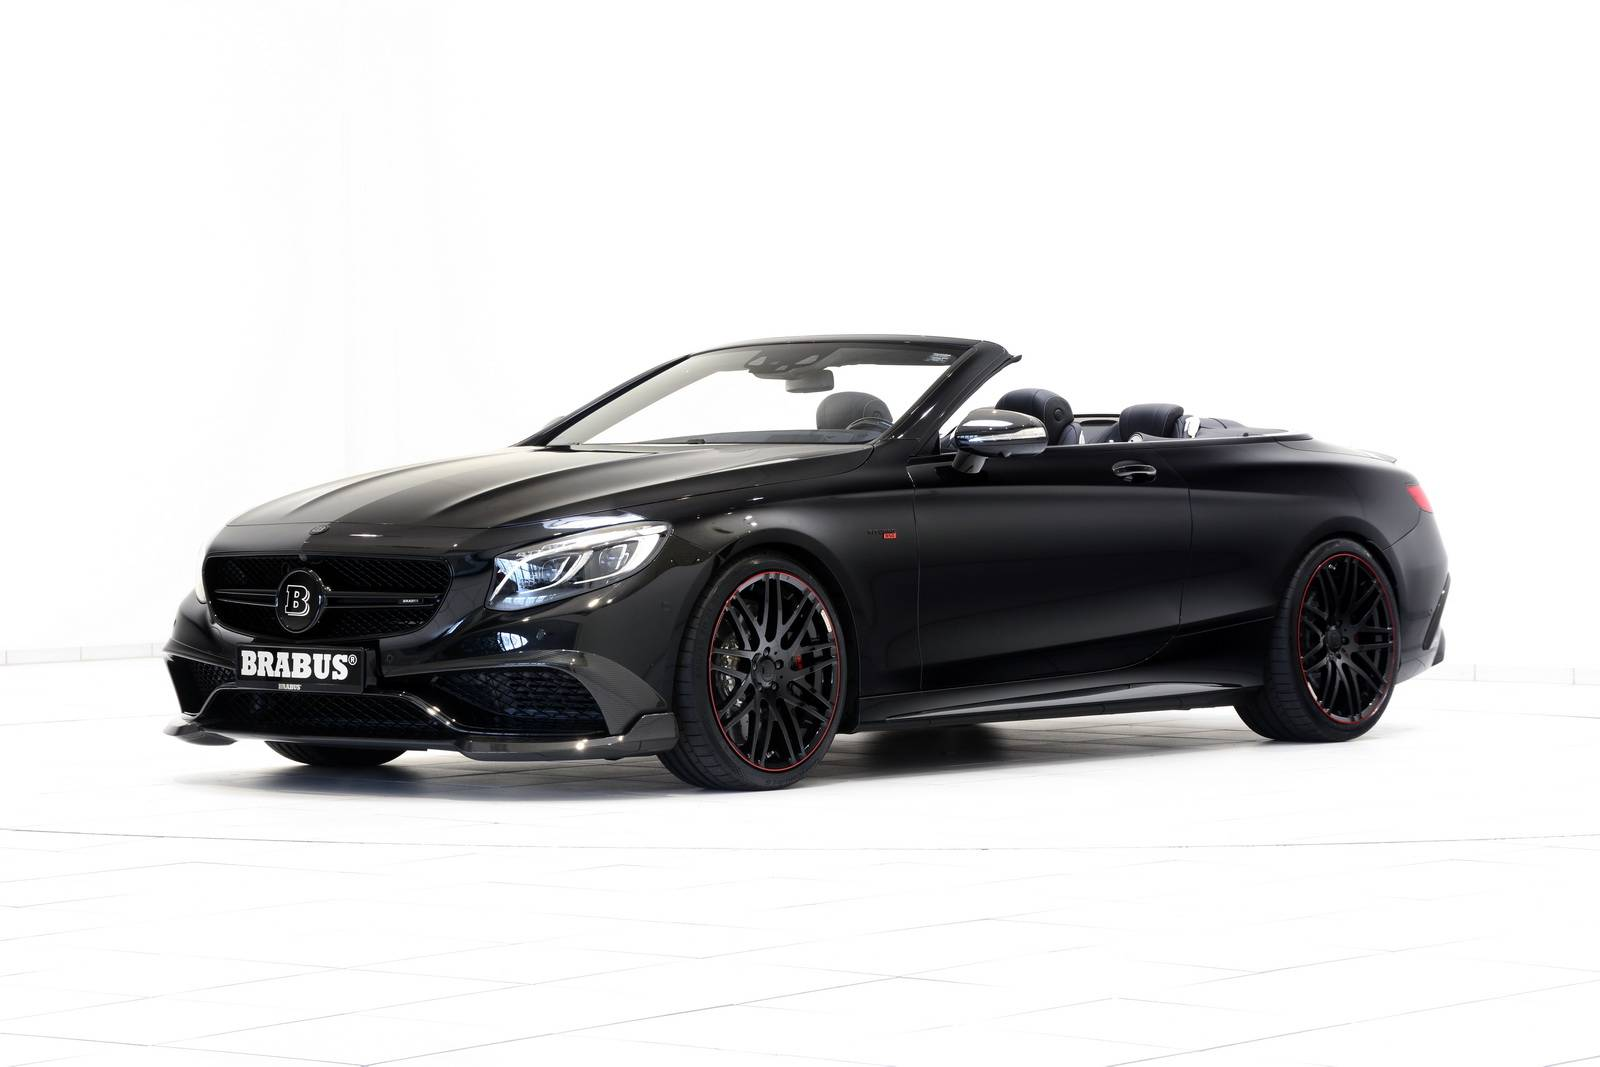 official 850hp brabus mercedes amg s63 cabriolet gtspirit. Black Bedroom Furniture Sets. Home Design Ideas